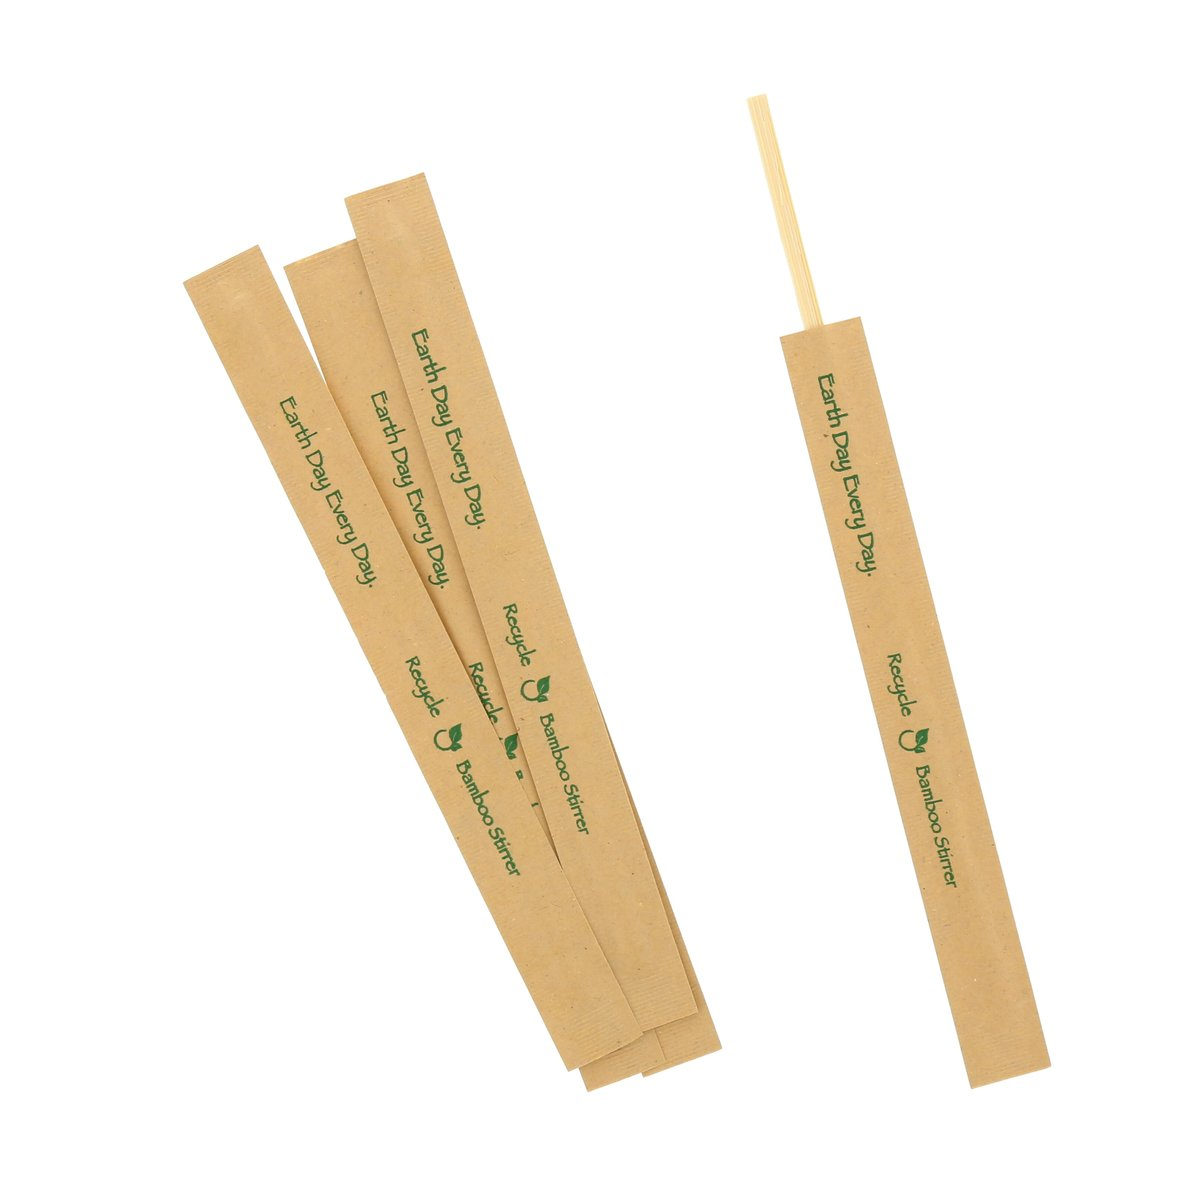 "Bamboo Stir Sticks, Length: 7"", Material: Kraft Paper Wrapped Bamboo, Color: Natural, 5000/cs"